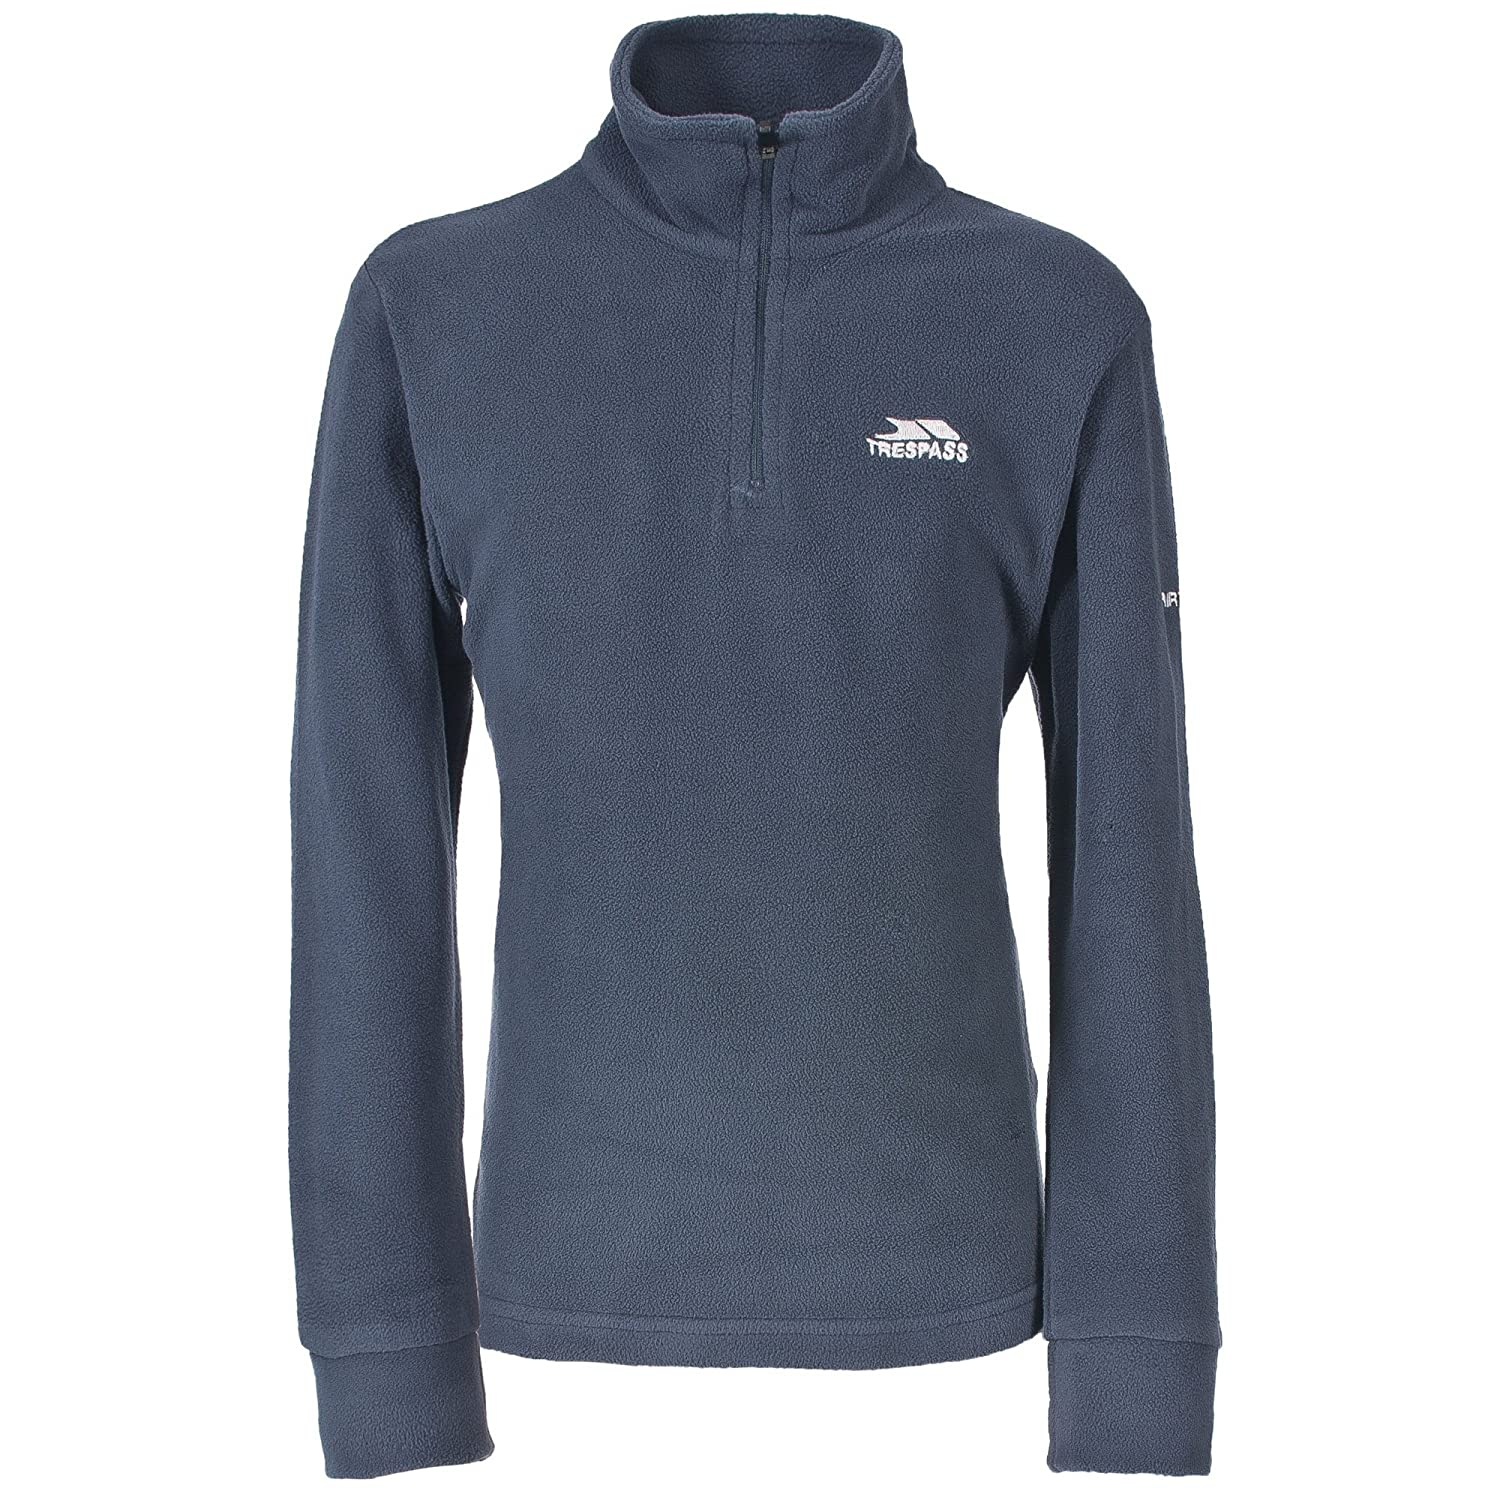 Ni/ños Trespass Masonville Microfleece At100 Forro Polar